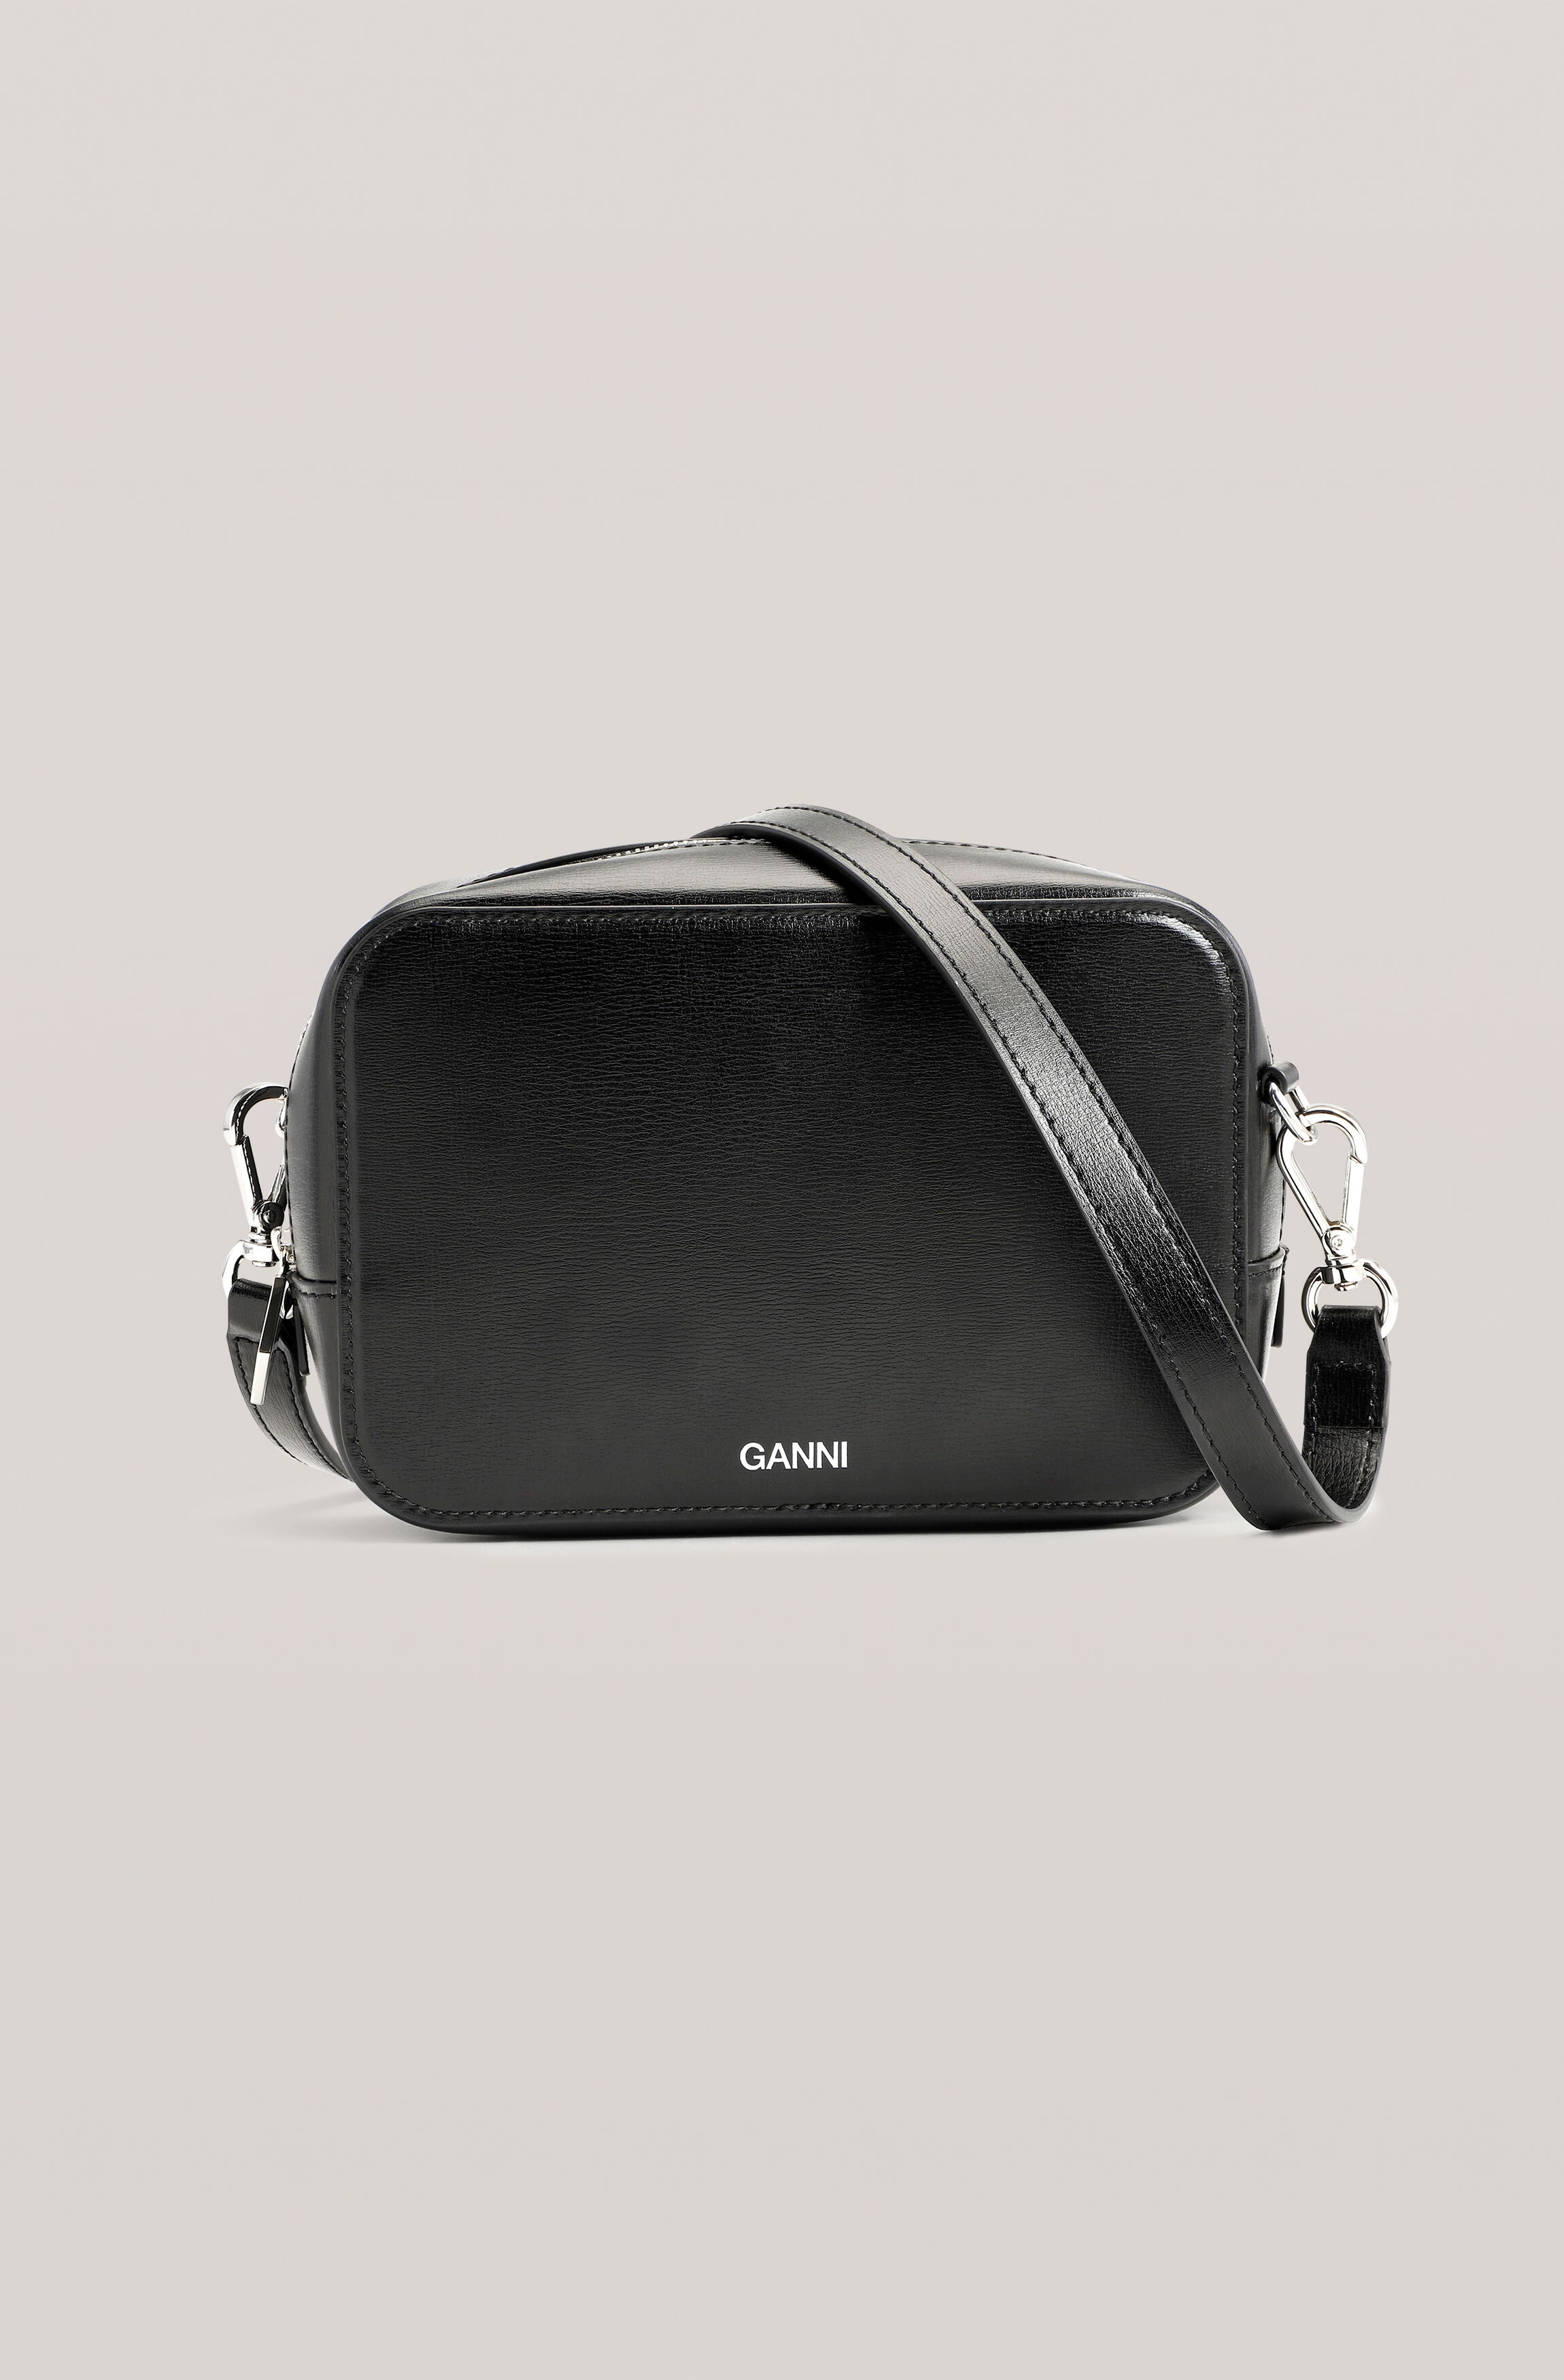 Ganni recycled Leather Bag Black